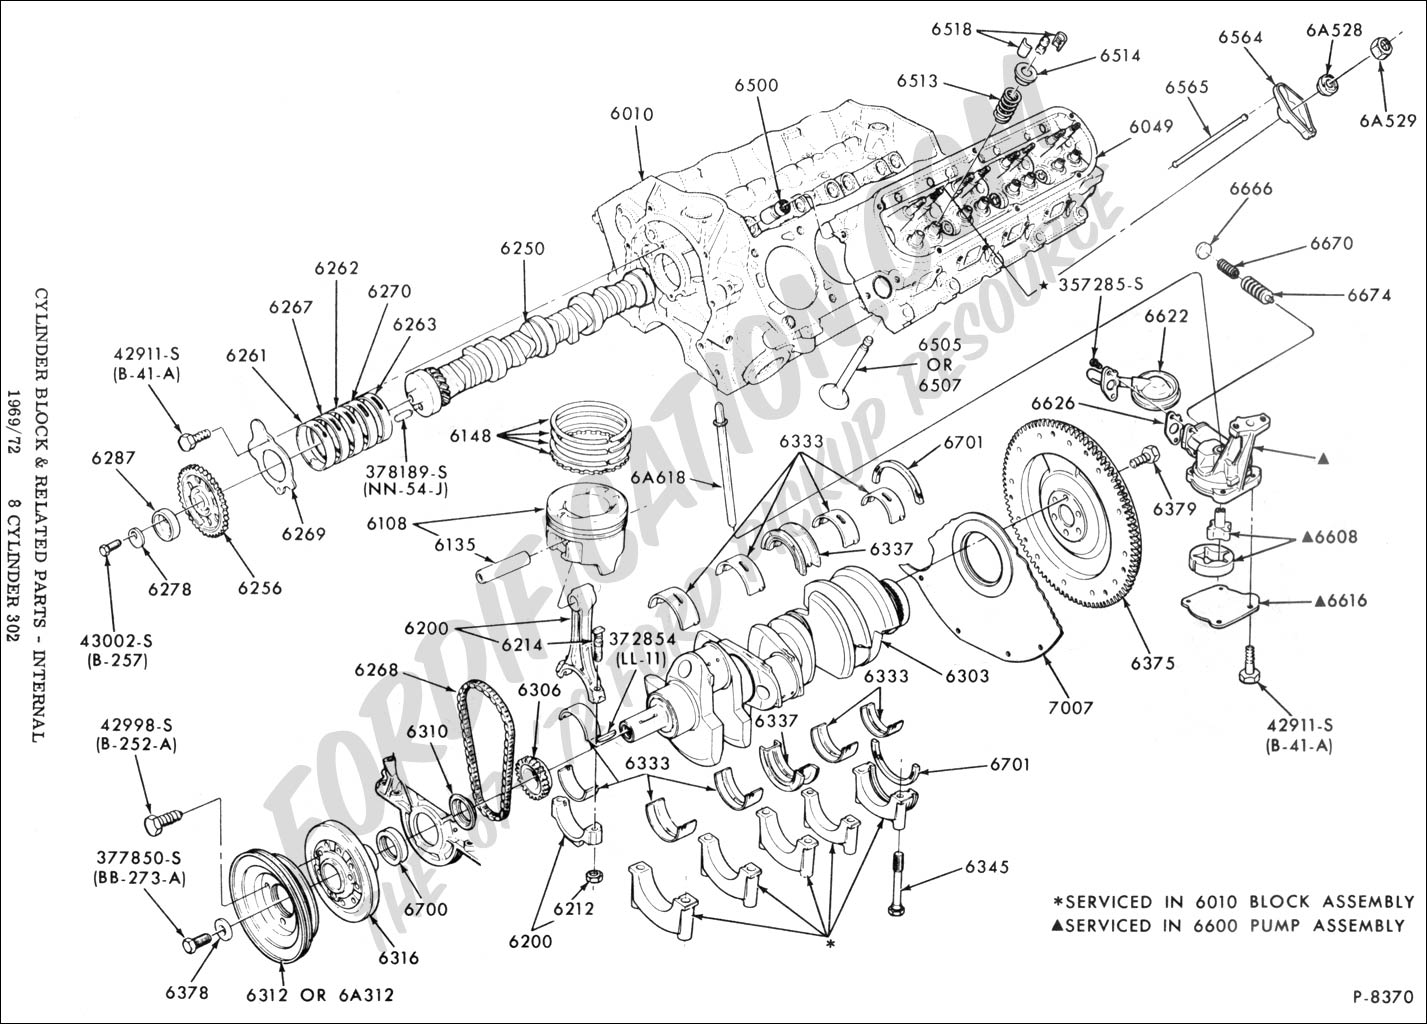 1969 Ford 302 Engine Diagram Schematics Wiring Diagrams Truck Technical Drawings And Section E Rh Fordification Com Mustang Boss Lsx 1968 Distributor